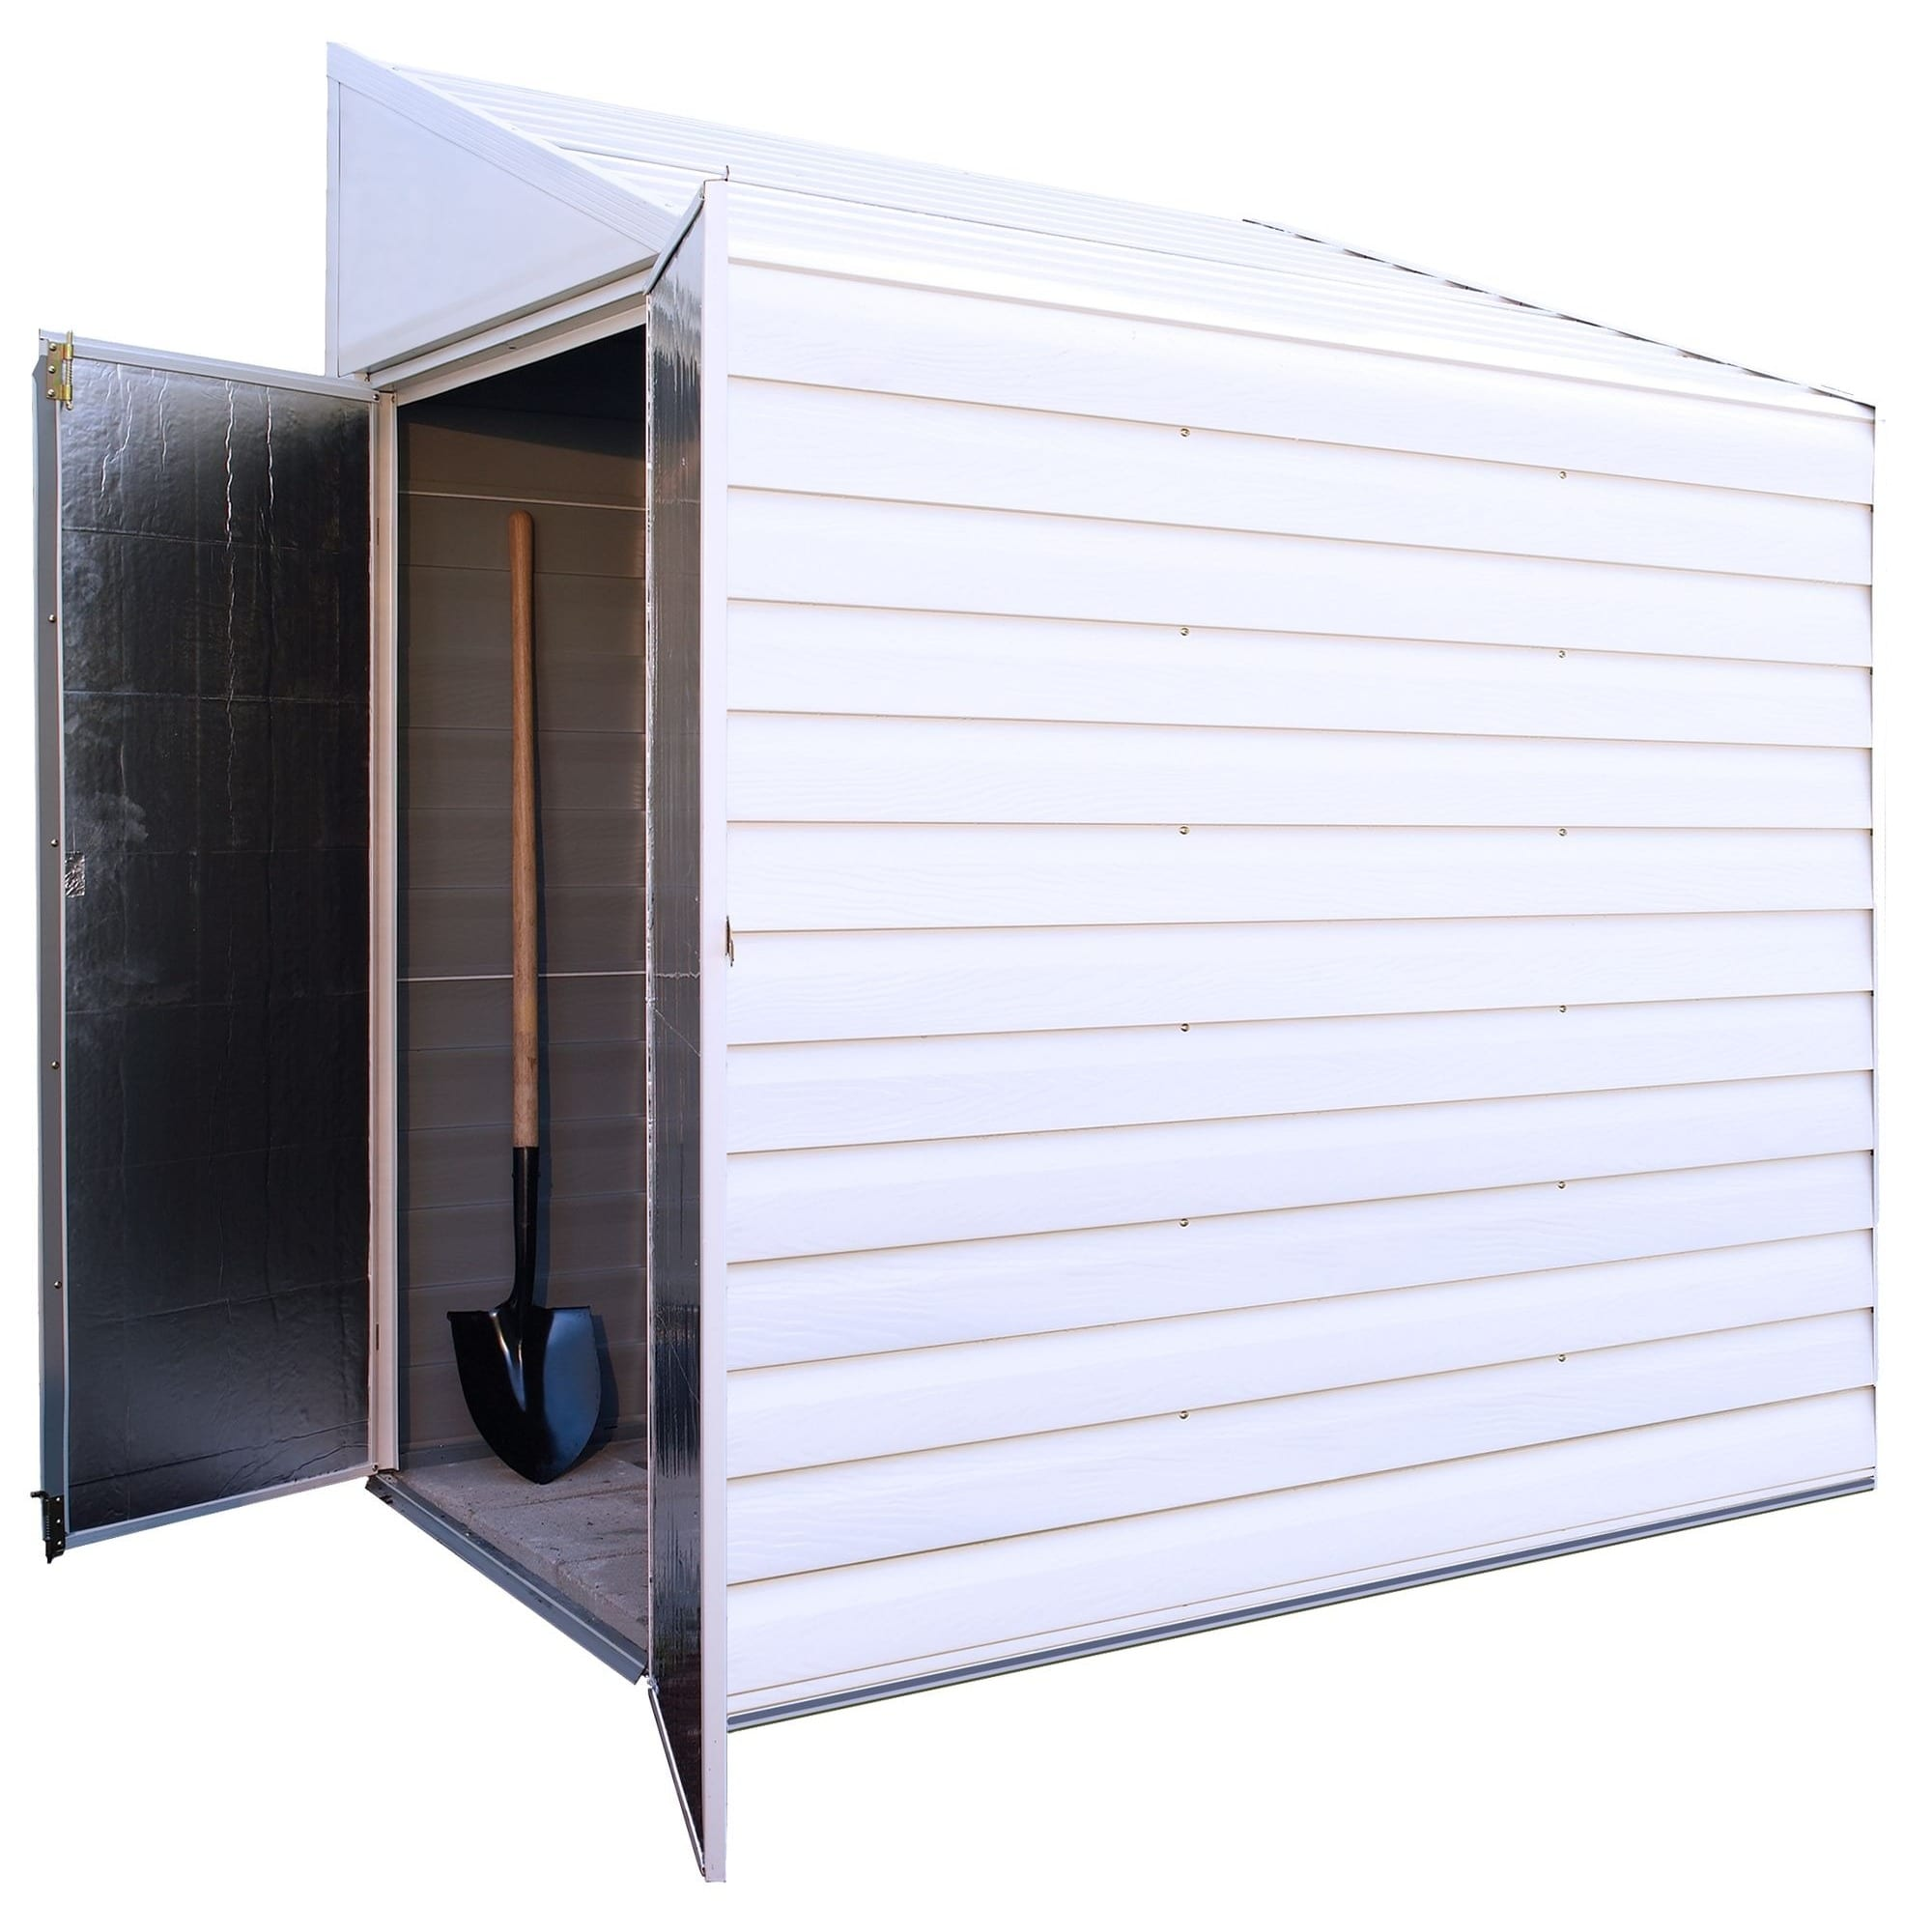 ARROW SHEDS YS47 Outdoor Storage Shed 26 cu ft Eggshell G